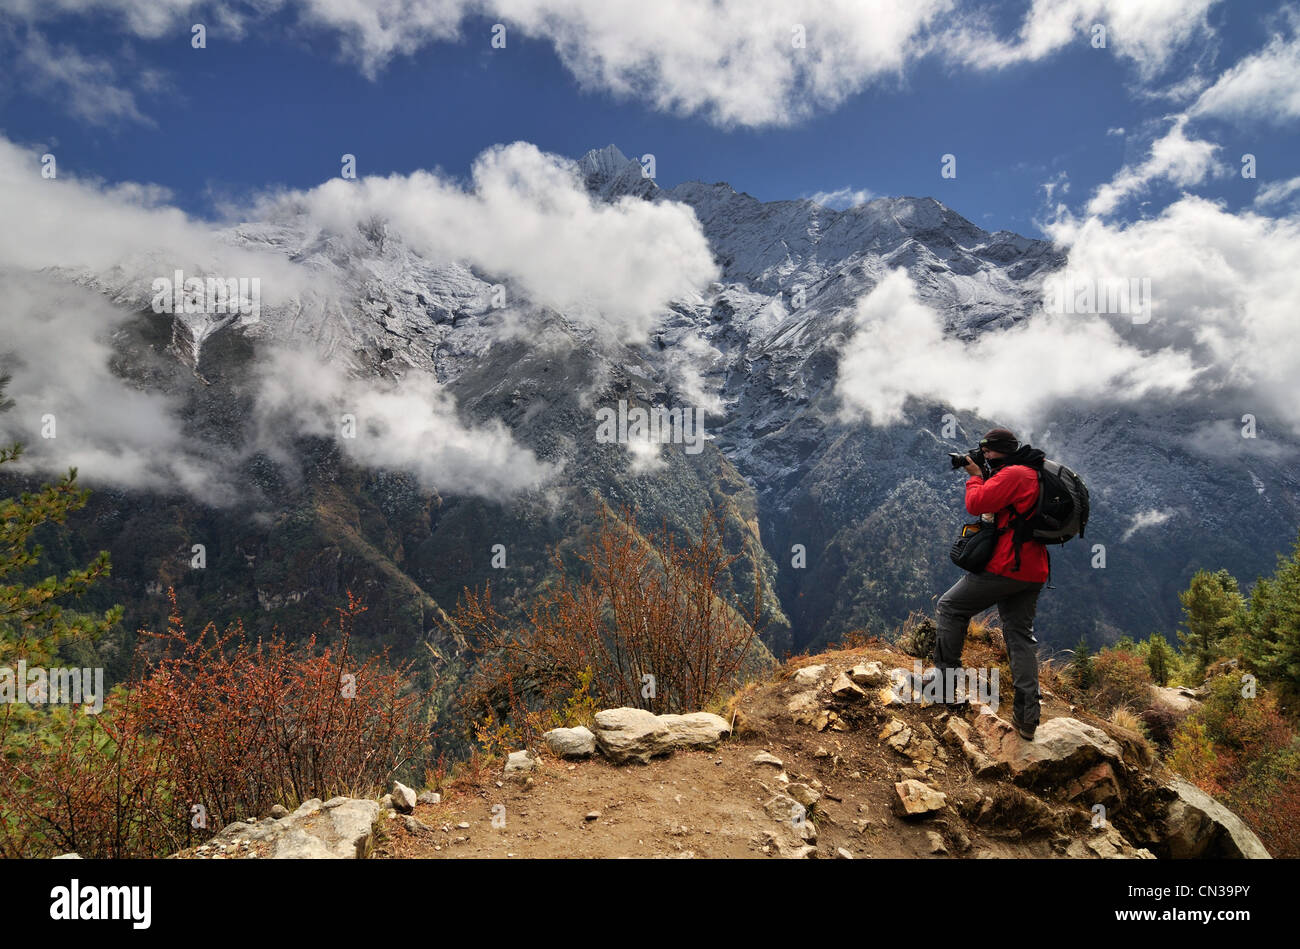 Photographer in the Himalayas on way from Namche Bazaar to Tengboche, Nepal - Stock Image